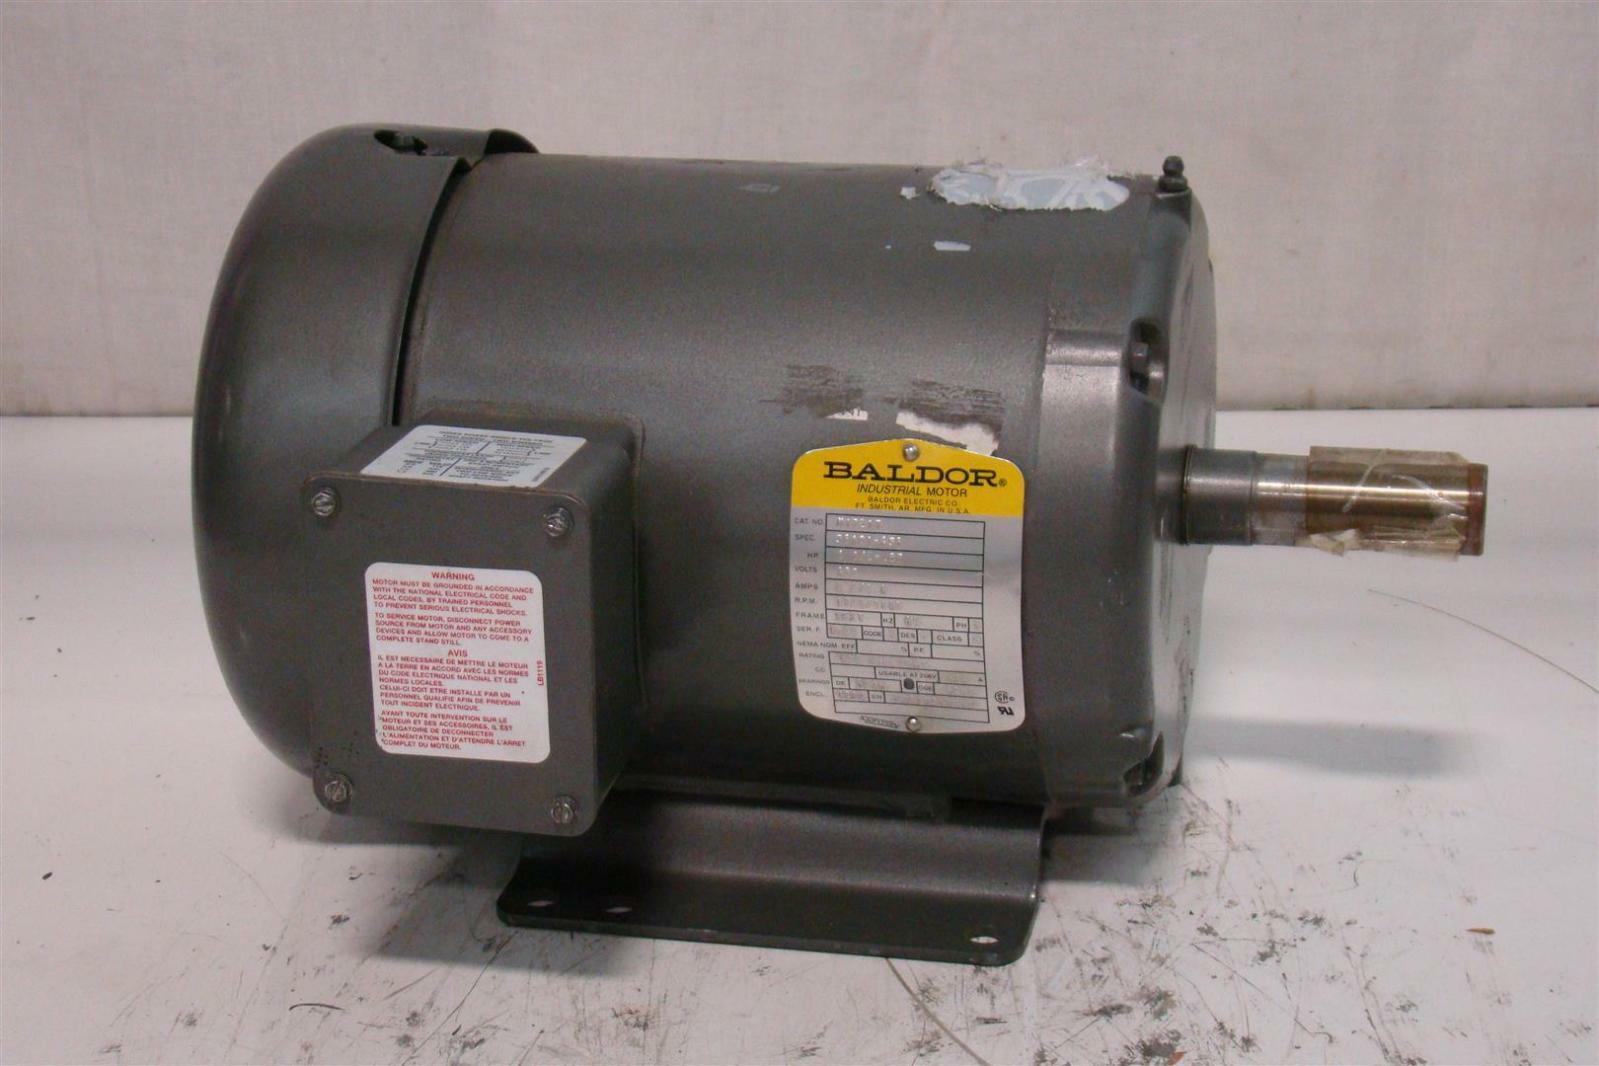 Baldor industrial motor 1 1 2hp 460v 1725 1140rpm m1721t for Baldor electric motor parts